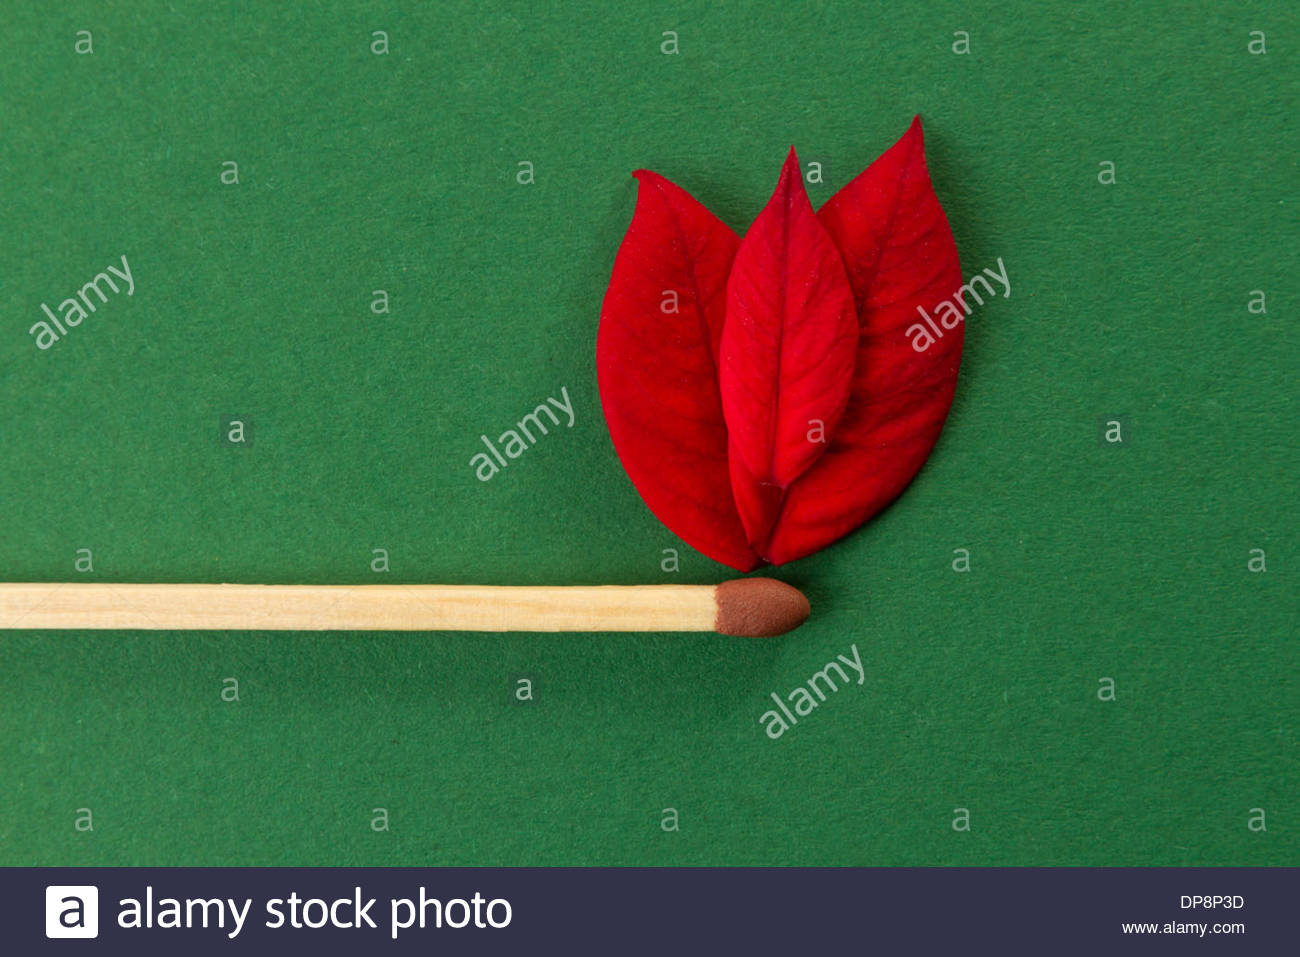 conceptual fire on match object isolated on green background - Stock Image